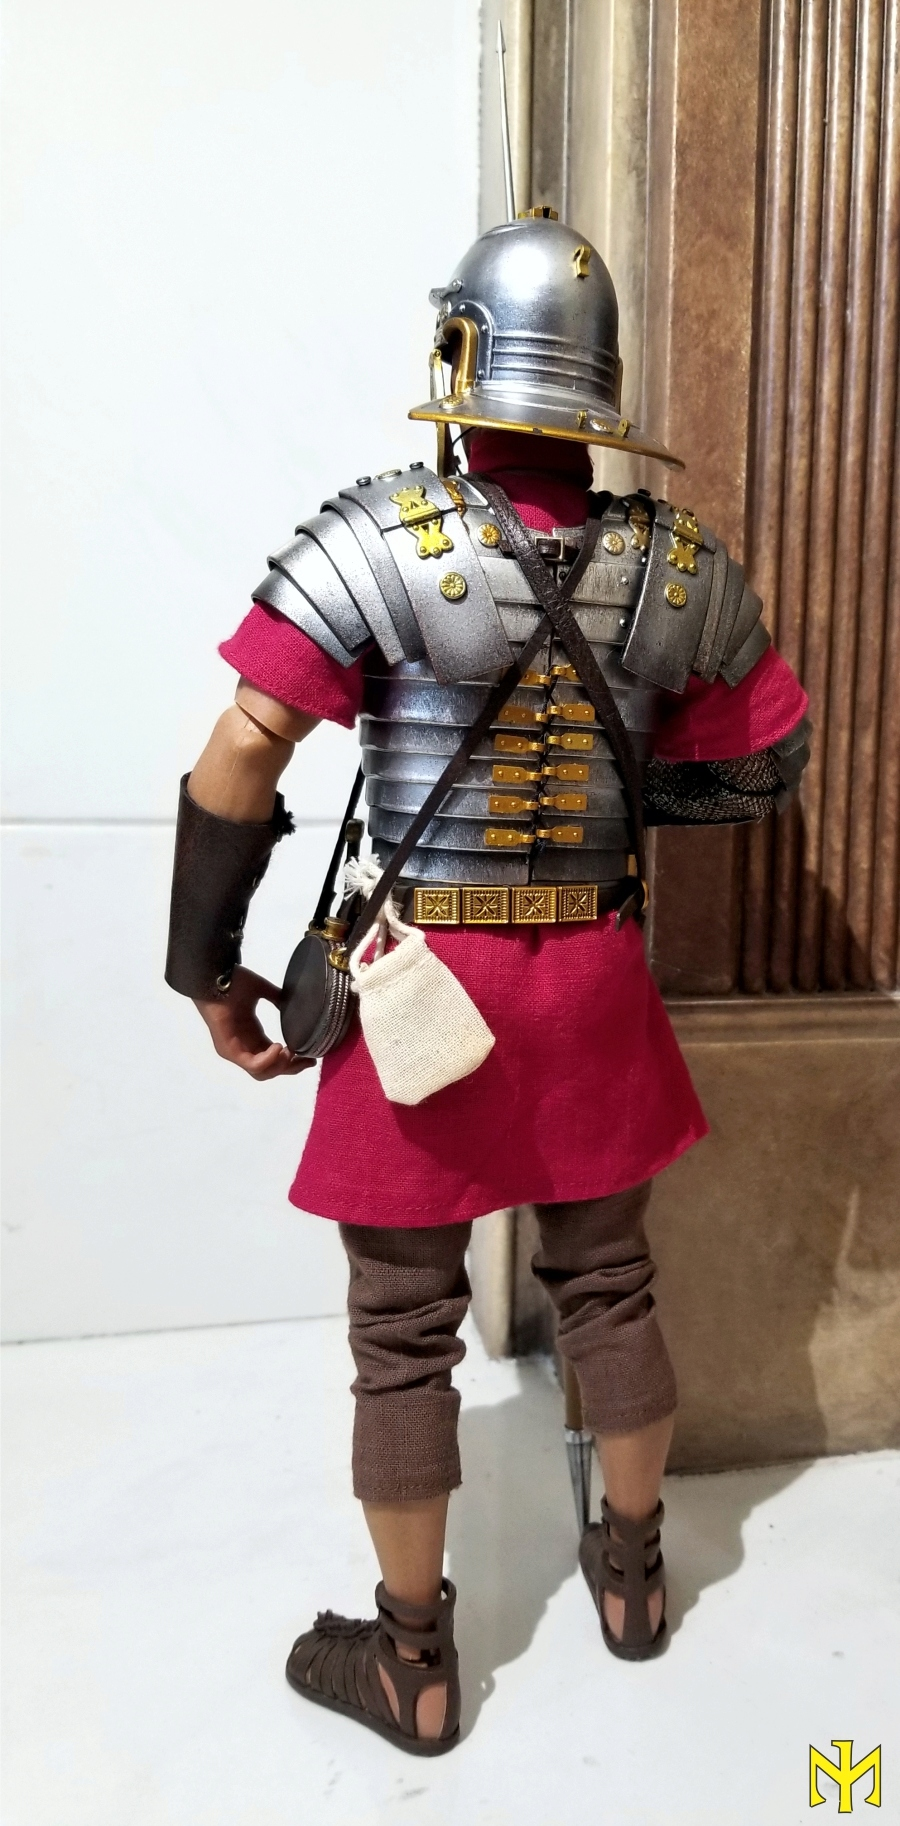 ROME Imperial Army Reloaded: Infantry by HH Model/HaoYu Toys review (updated with comparison photos) Iir0810